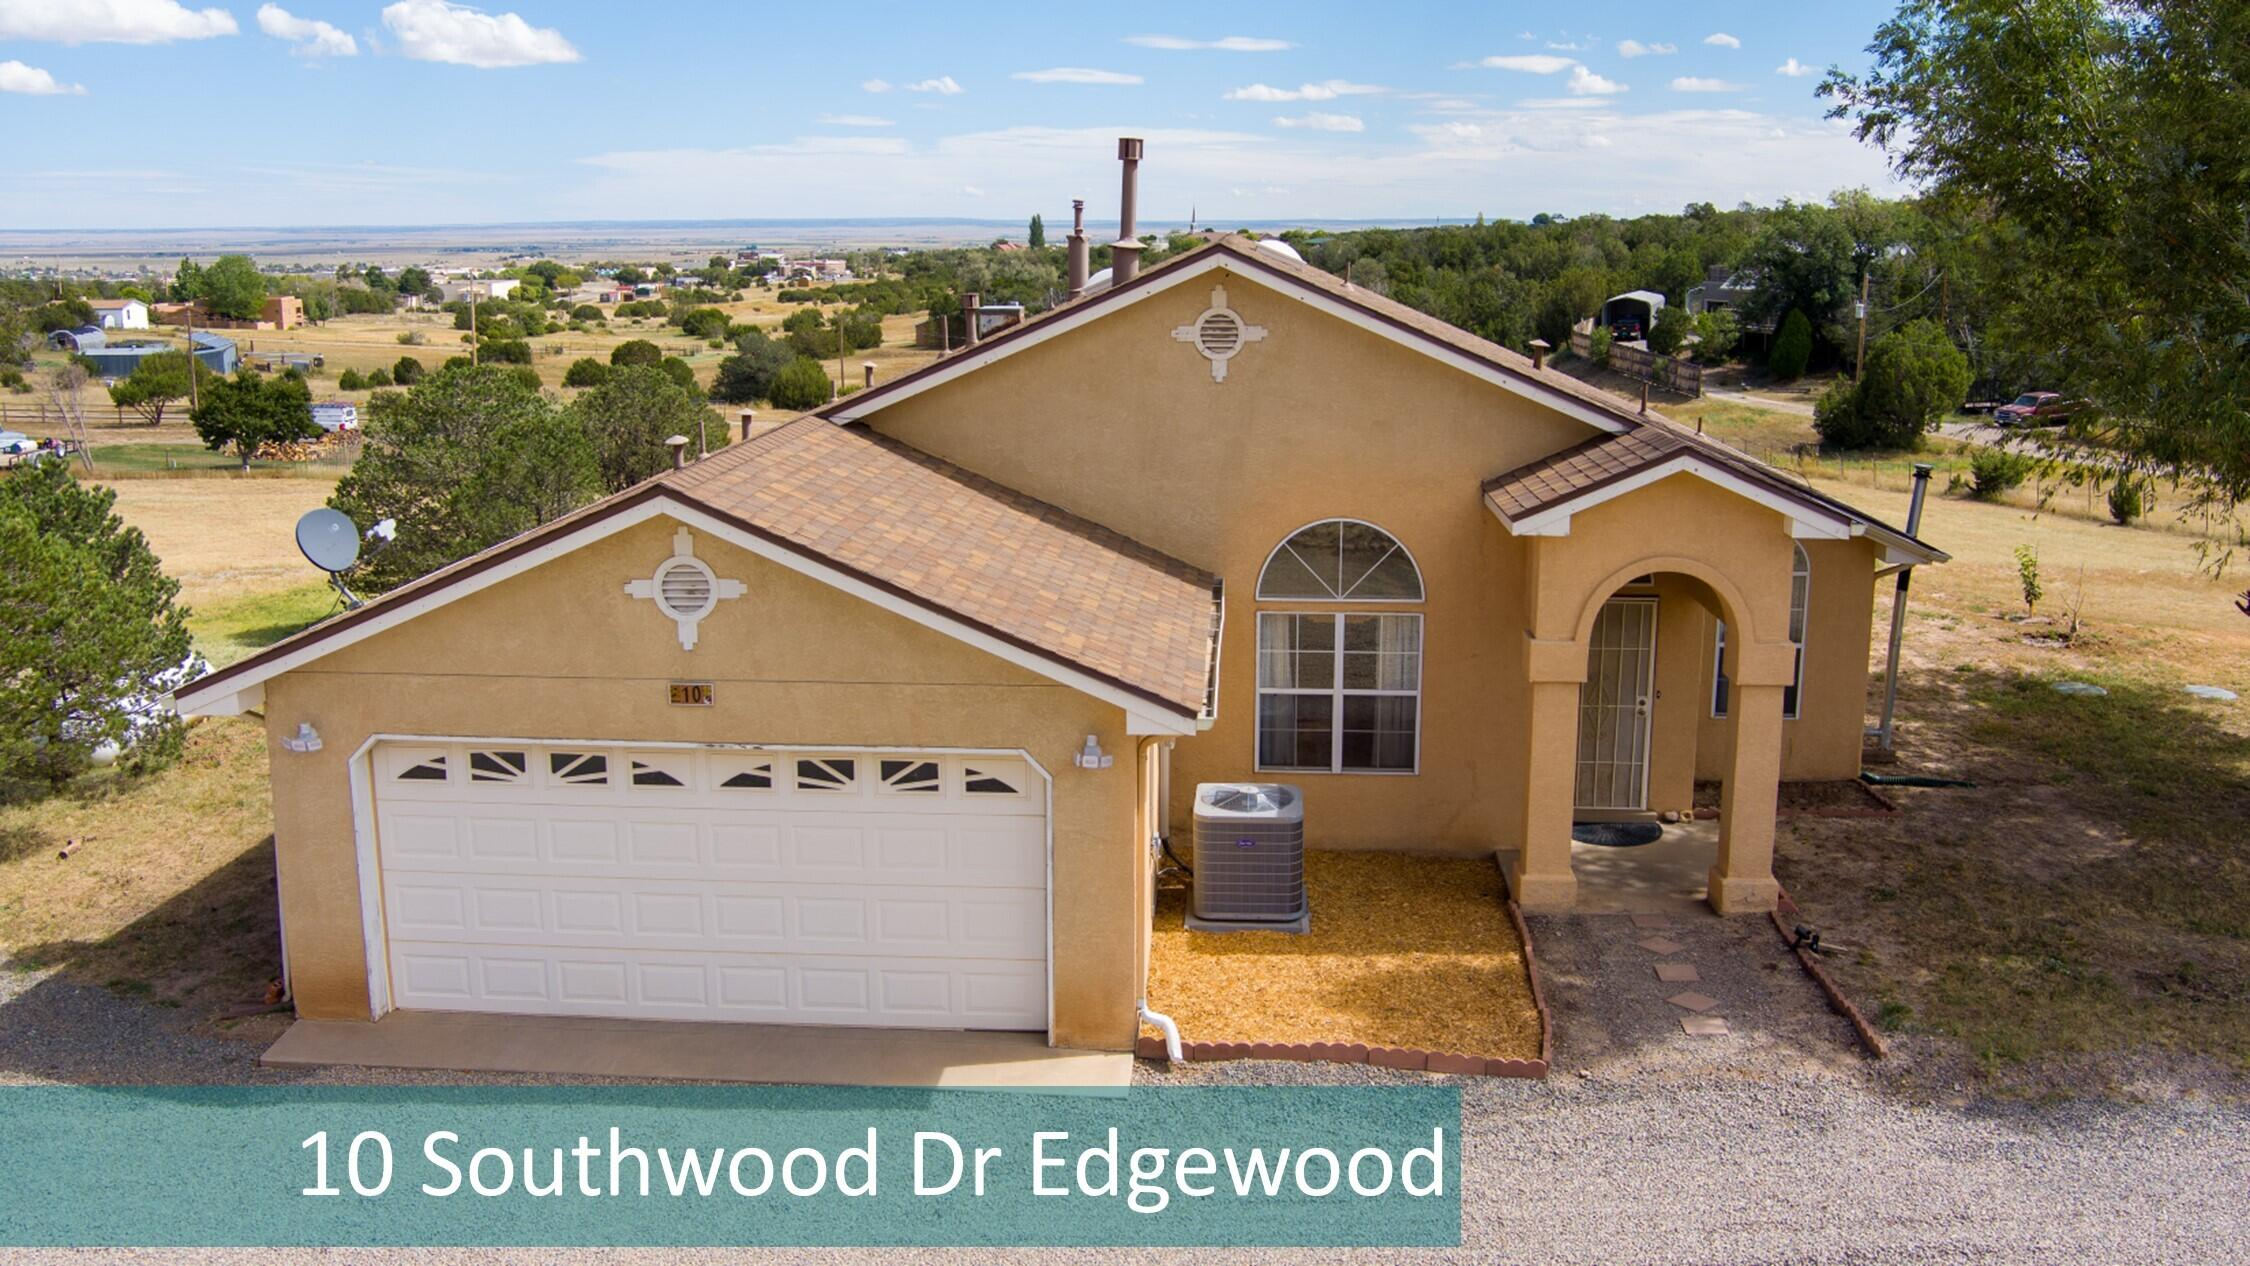 Ready for the peace and quiet of the country with convenient city amenities?  Then you'll love coming home to this single-story on 2 acres just minutes from I-40 and shopping/eateries.  The property is totally fenced with an additional/smaller fenced area from the back patio AND a dog run.  Updates in 2021 include water heater, refrigerated air/furnace combo unit, Samsung side-by-side refrigerator, Puronic reverse osmosis, and grading/gravel for improved drainage.  And roof and water softener less than 2 years old!  Appealing floor plan with master bedroom separate from the other 2 bedrooms.  Luxuriate in your soaking tub and separate shower!  Open kitchen to family room and views to the backyard. Plus a 2nd living area and formal dining room! And 2 storage sheds and pole barn/RV parking!